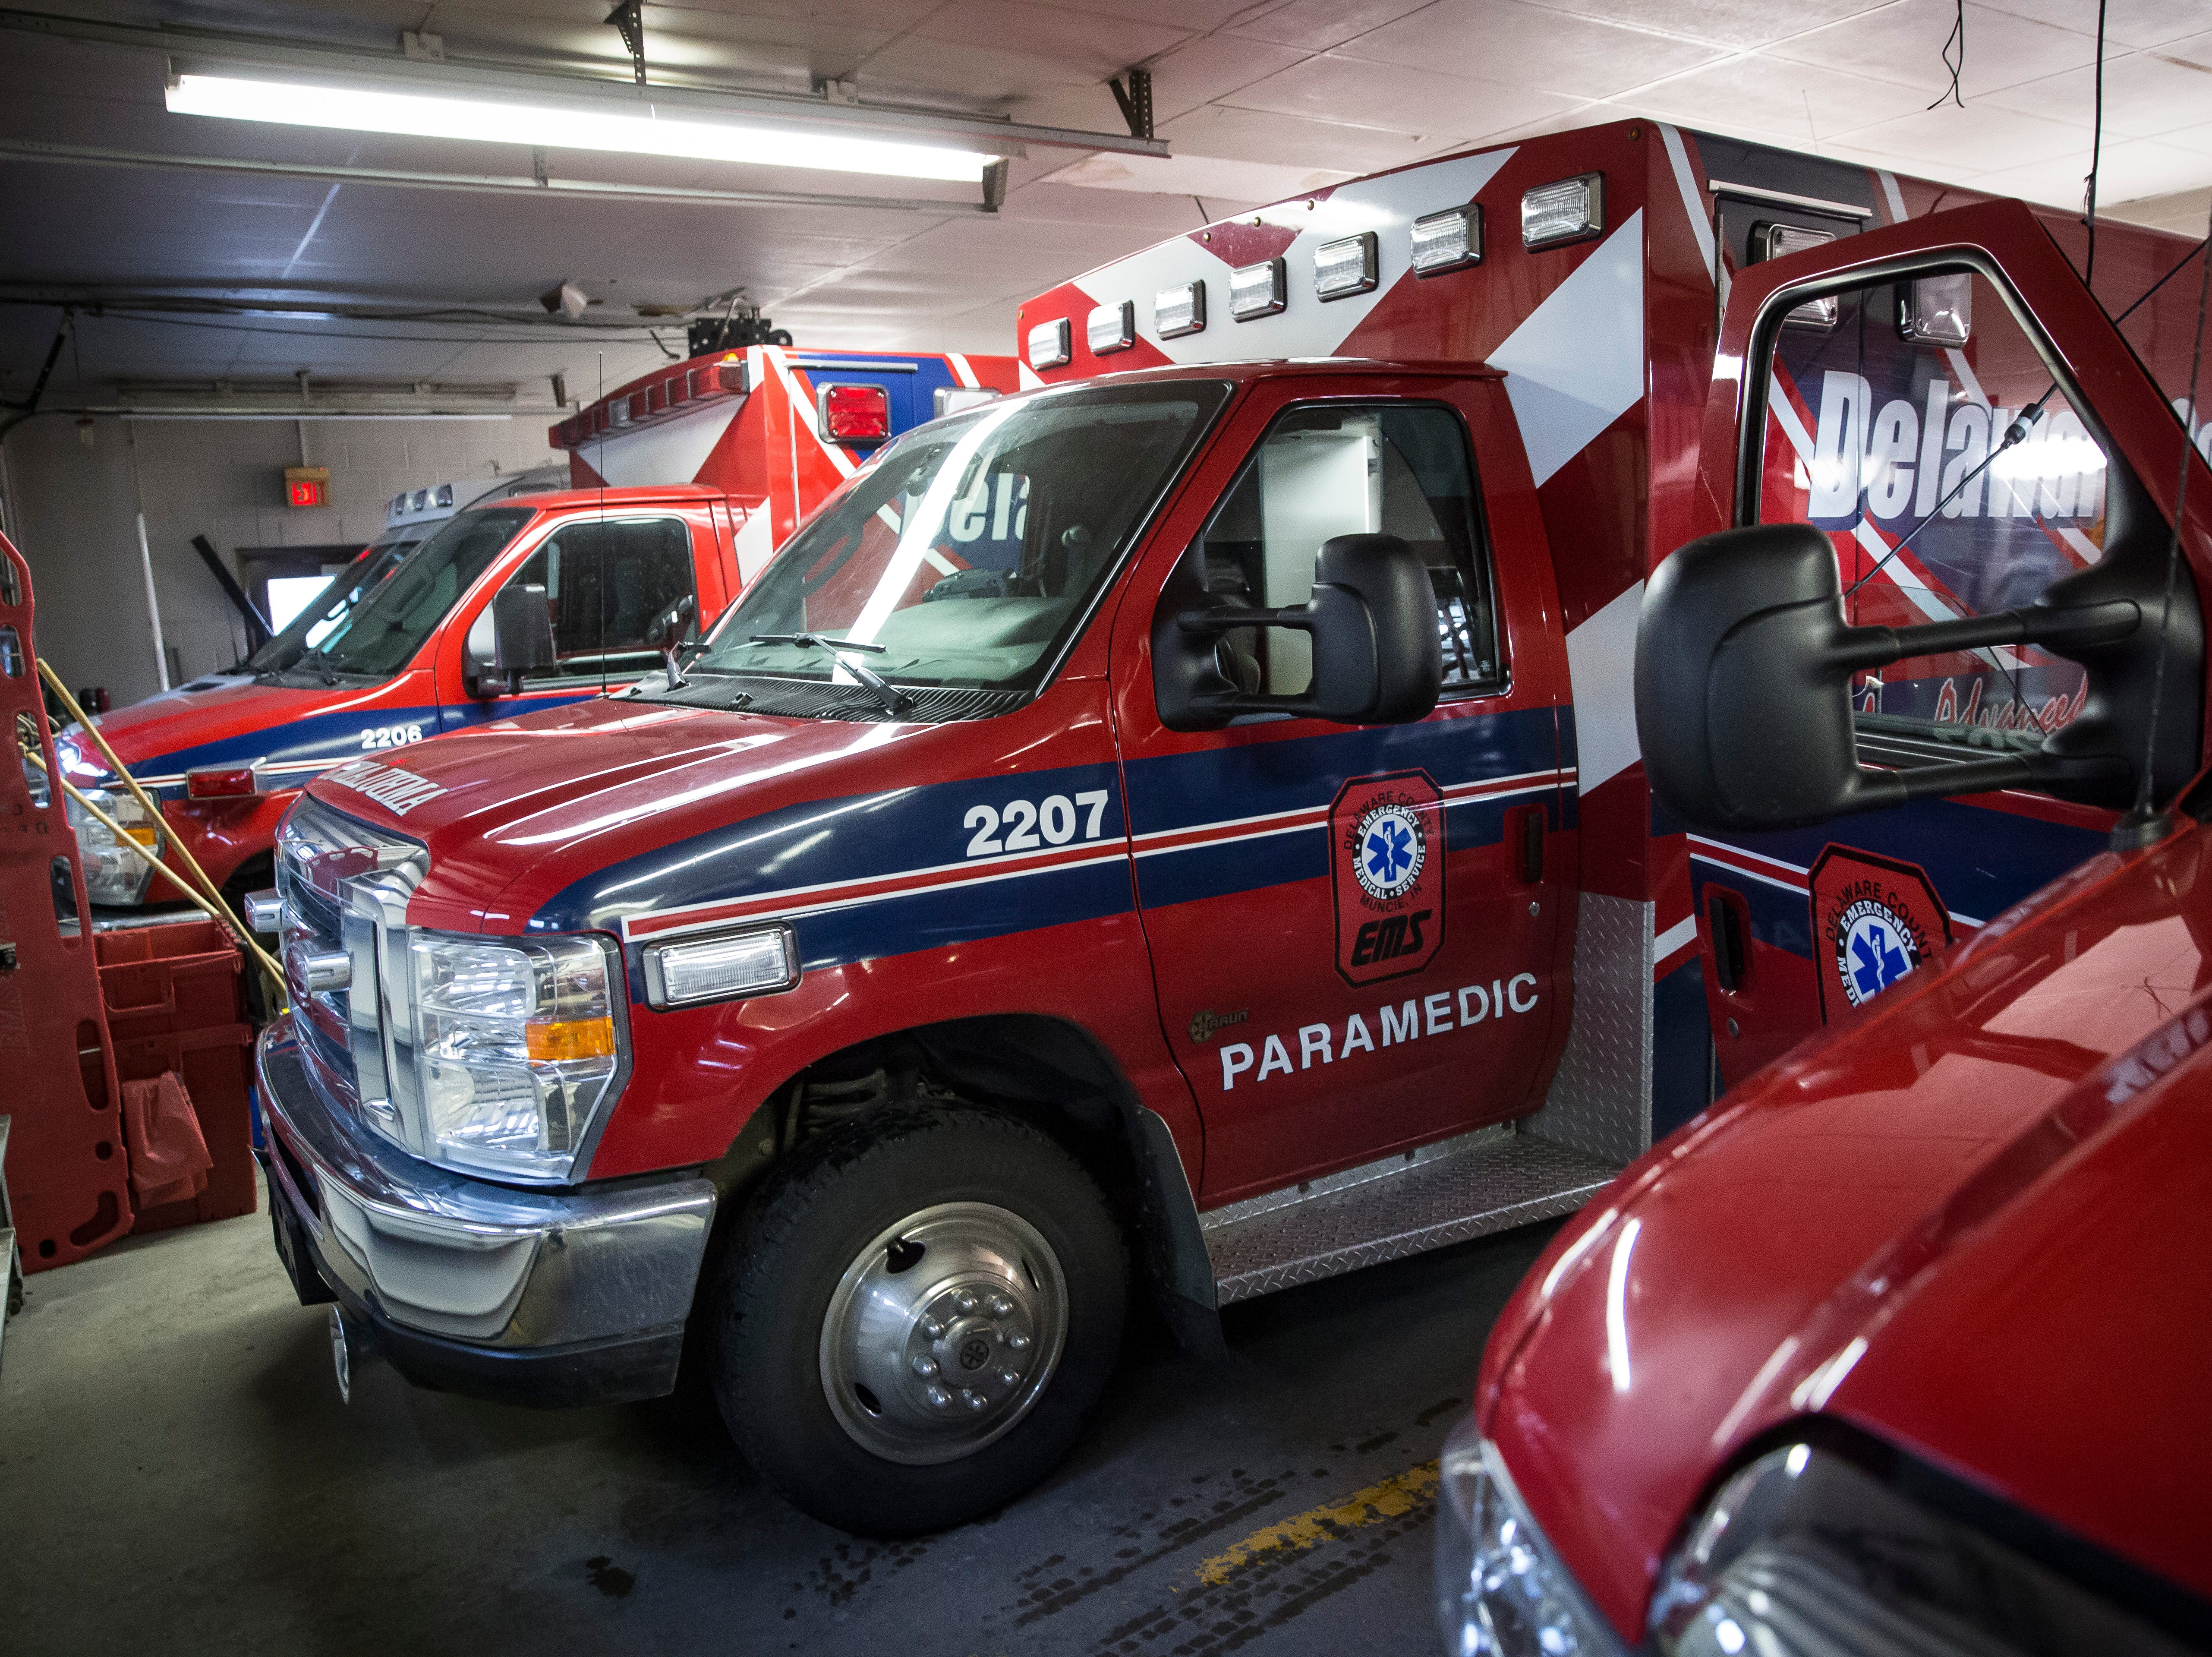 Delaware County EMS crews restock trucks after runs in the downtown station on Friday, Feb. 8.